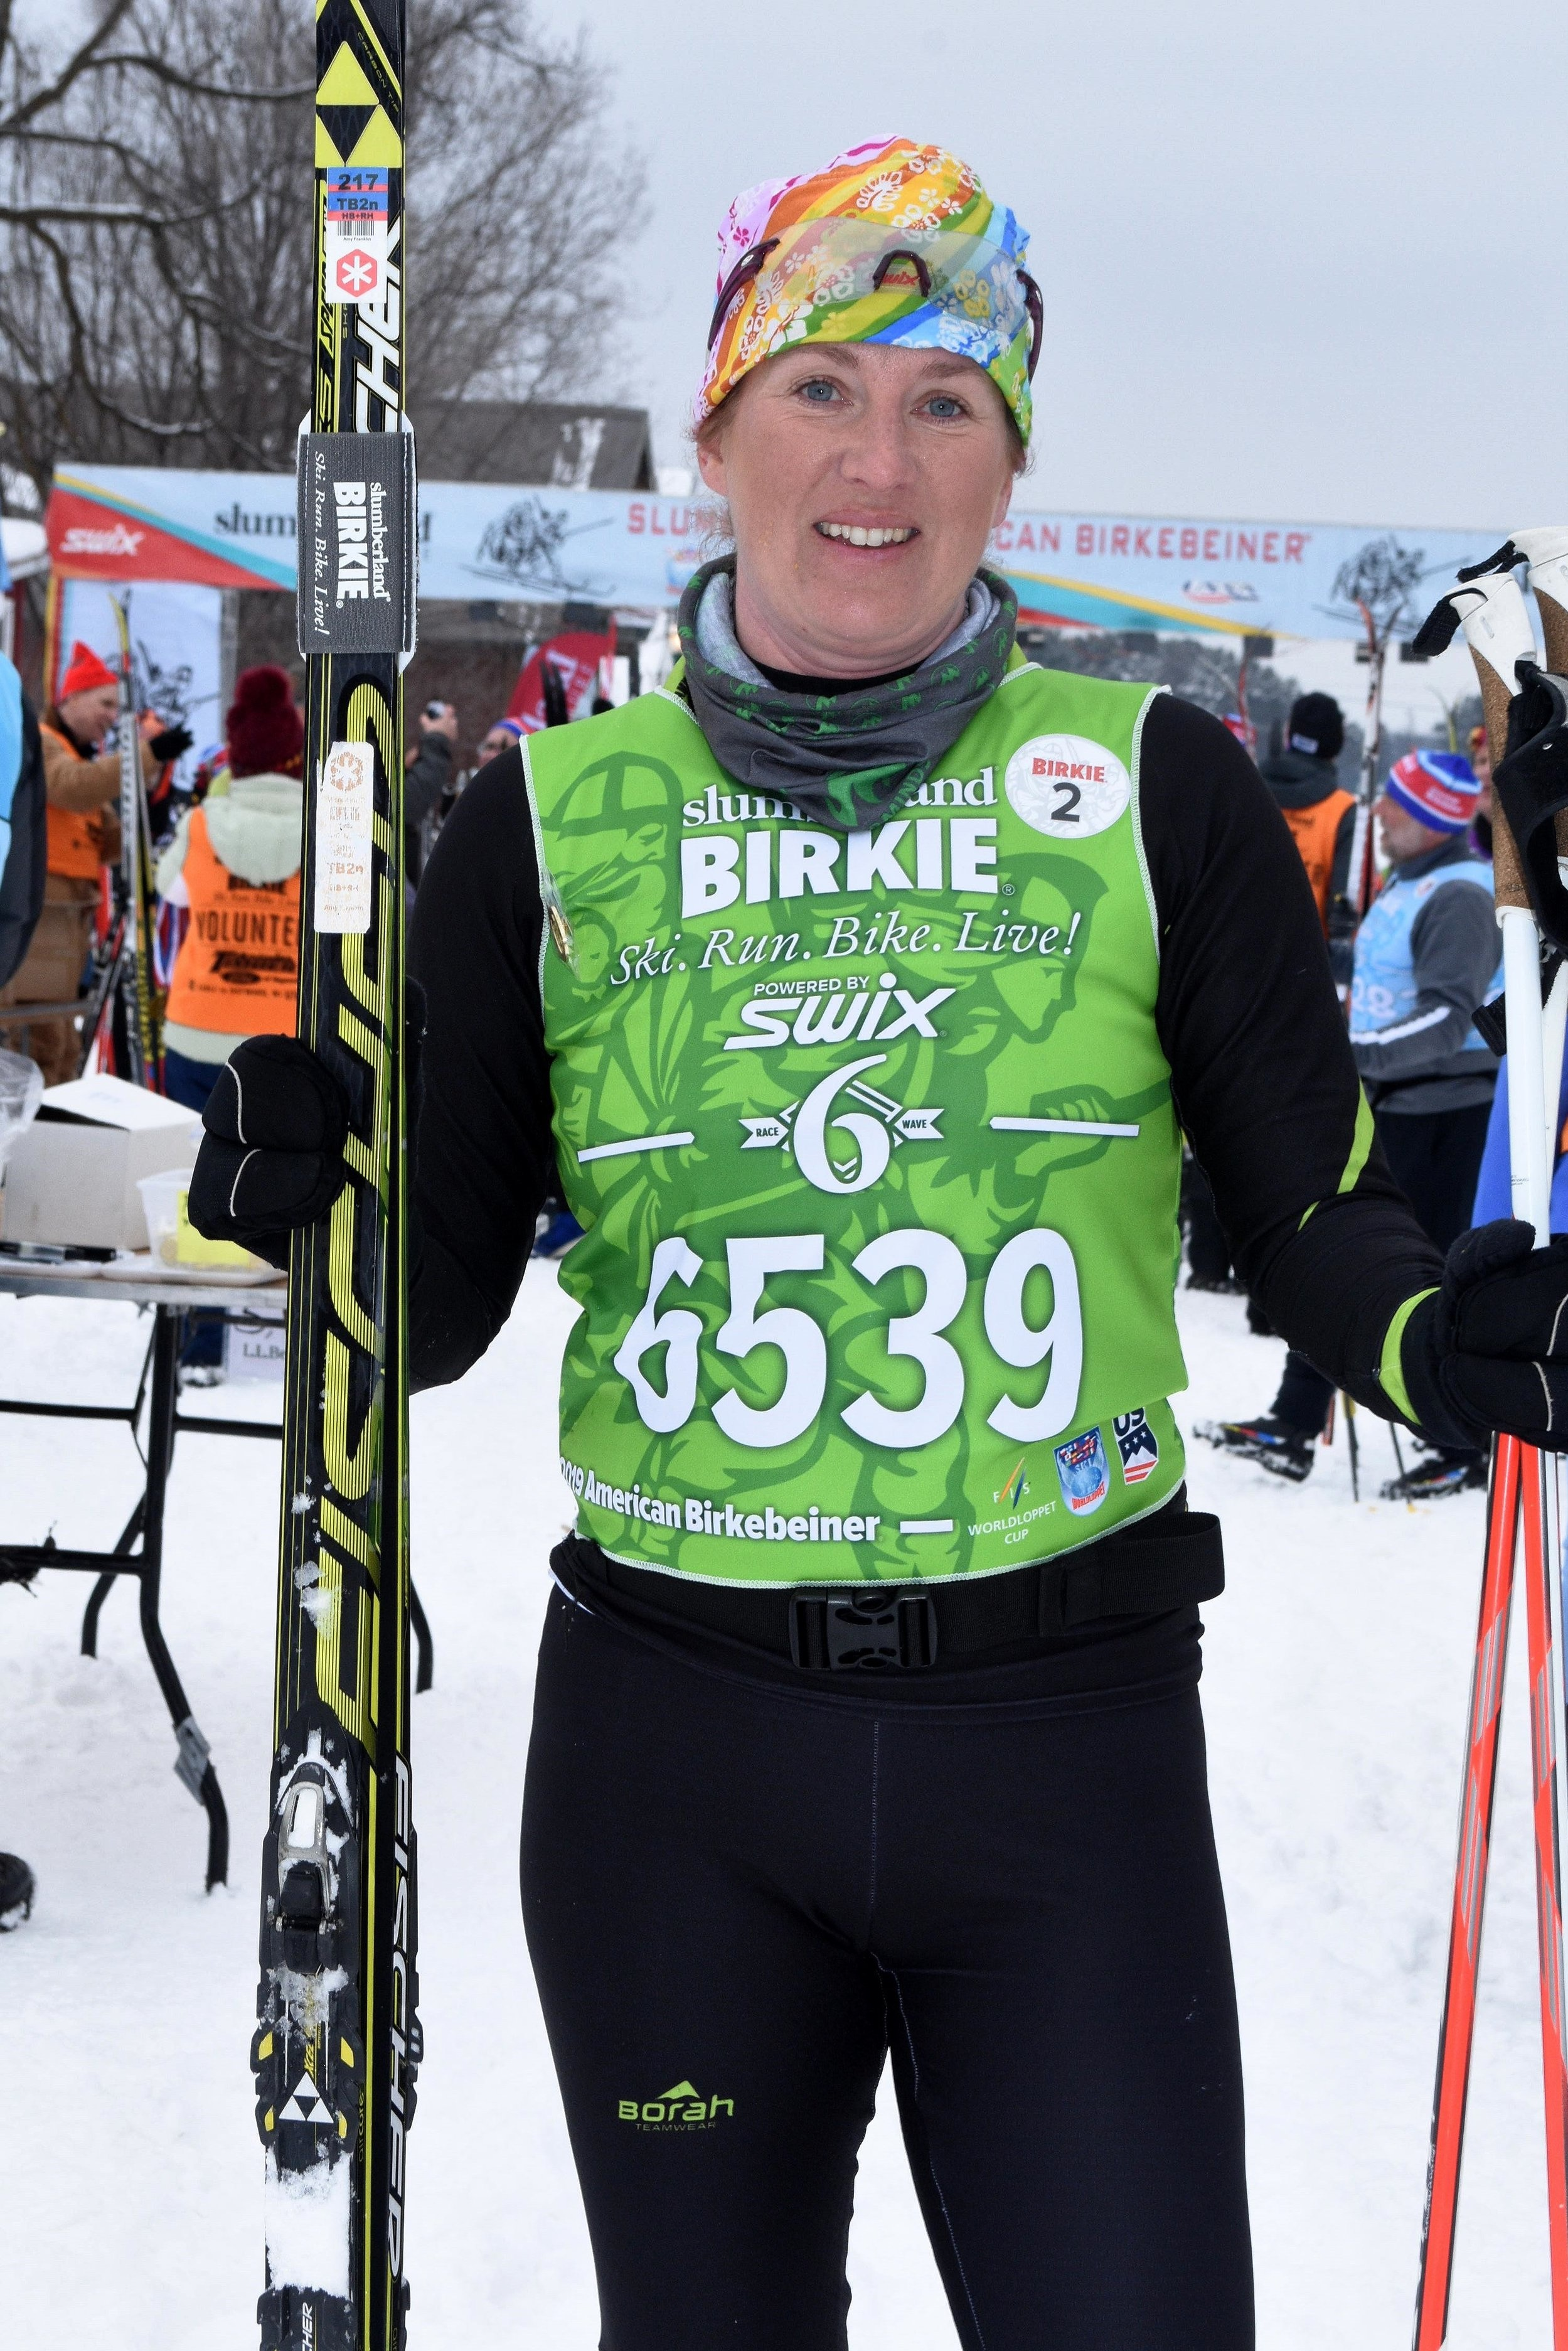 Amy rockin' the 2019 Birkebeiner in Hayward Wisconsin.